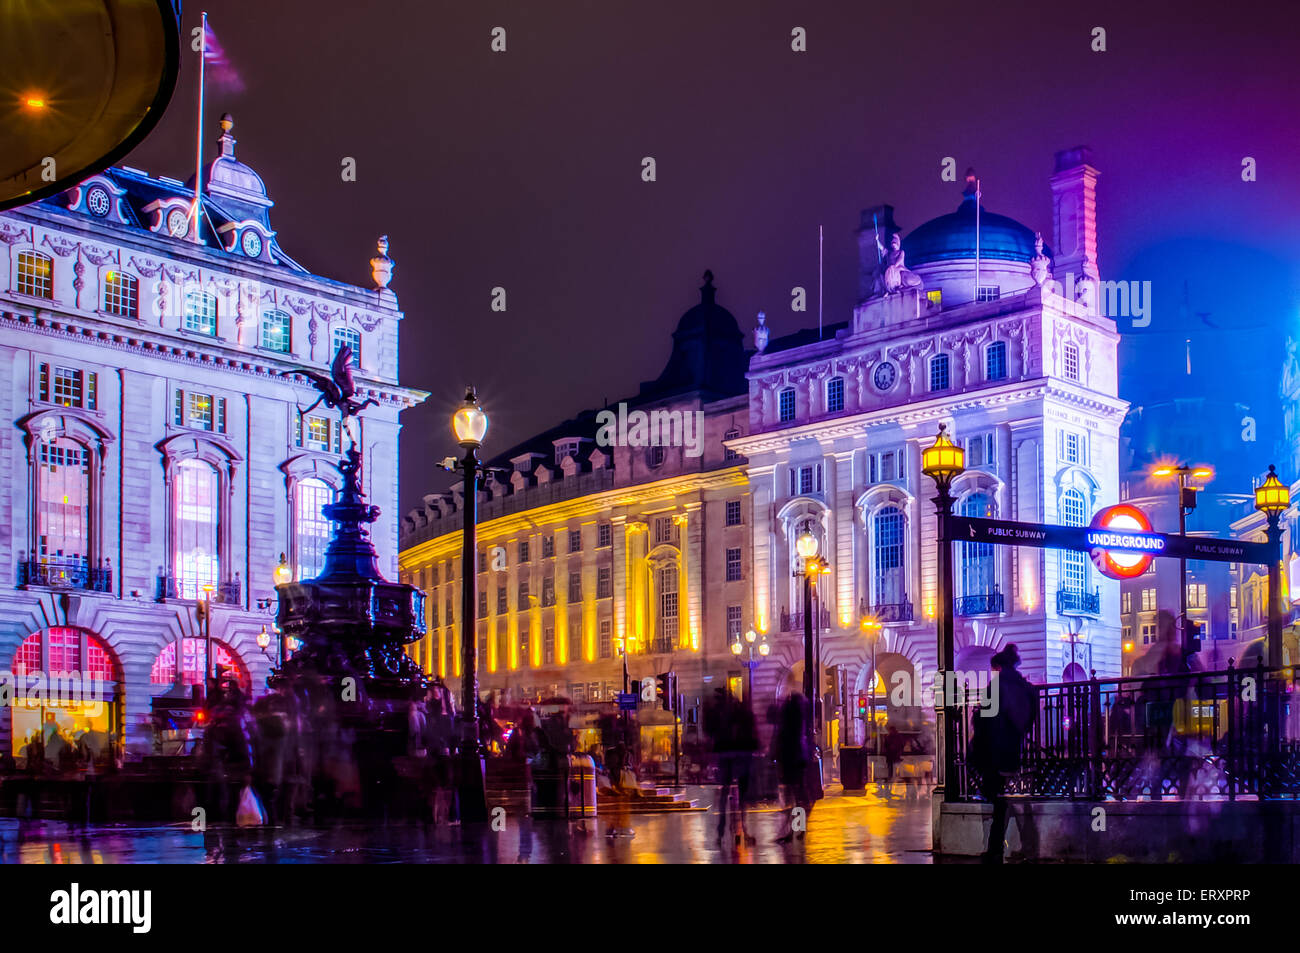 Piccadilly Circus at Night, Underground Sign in London, UK - Stock Image